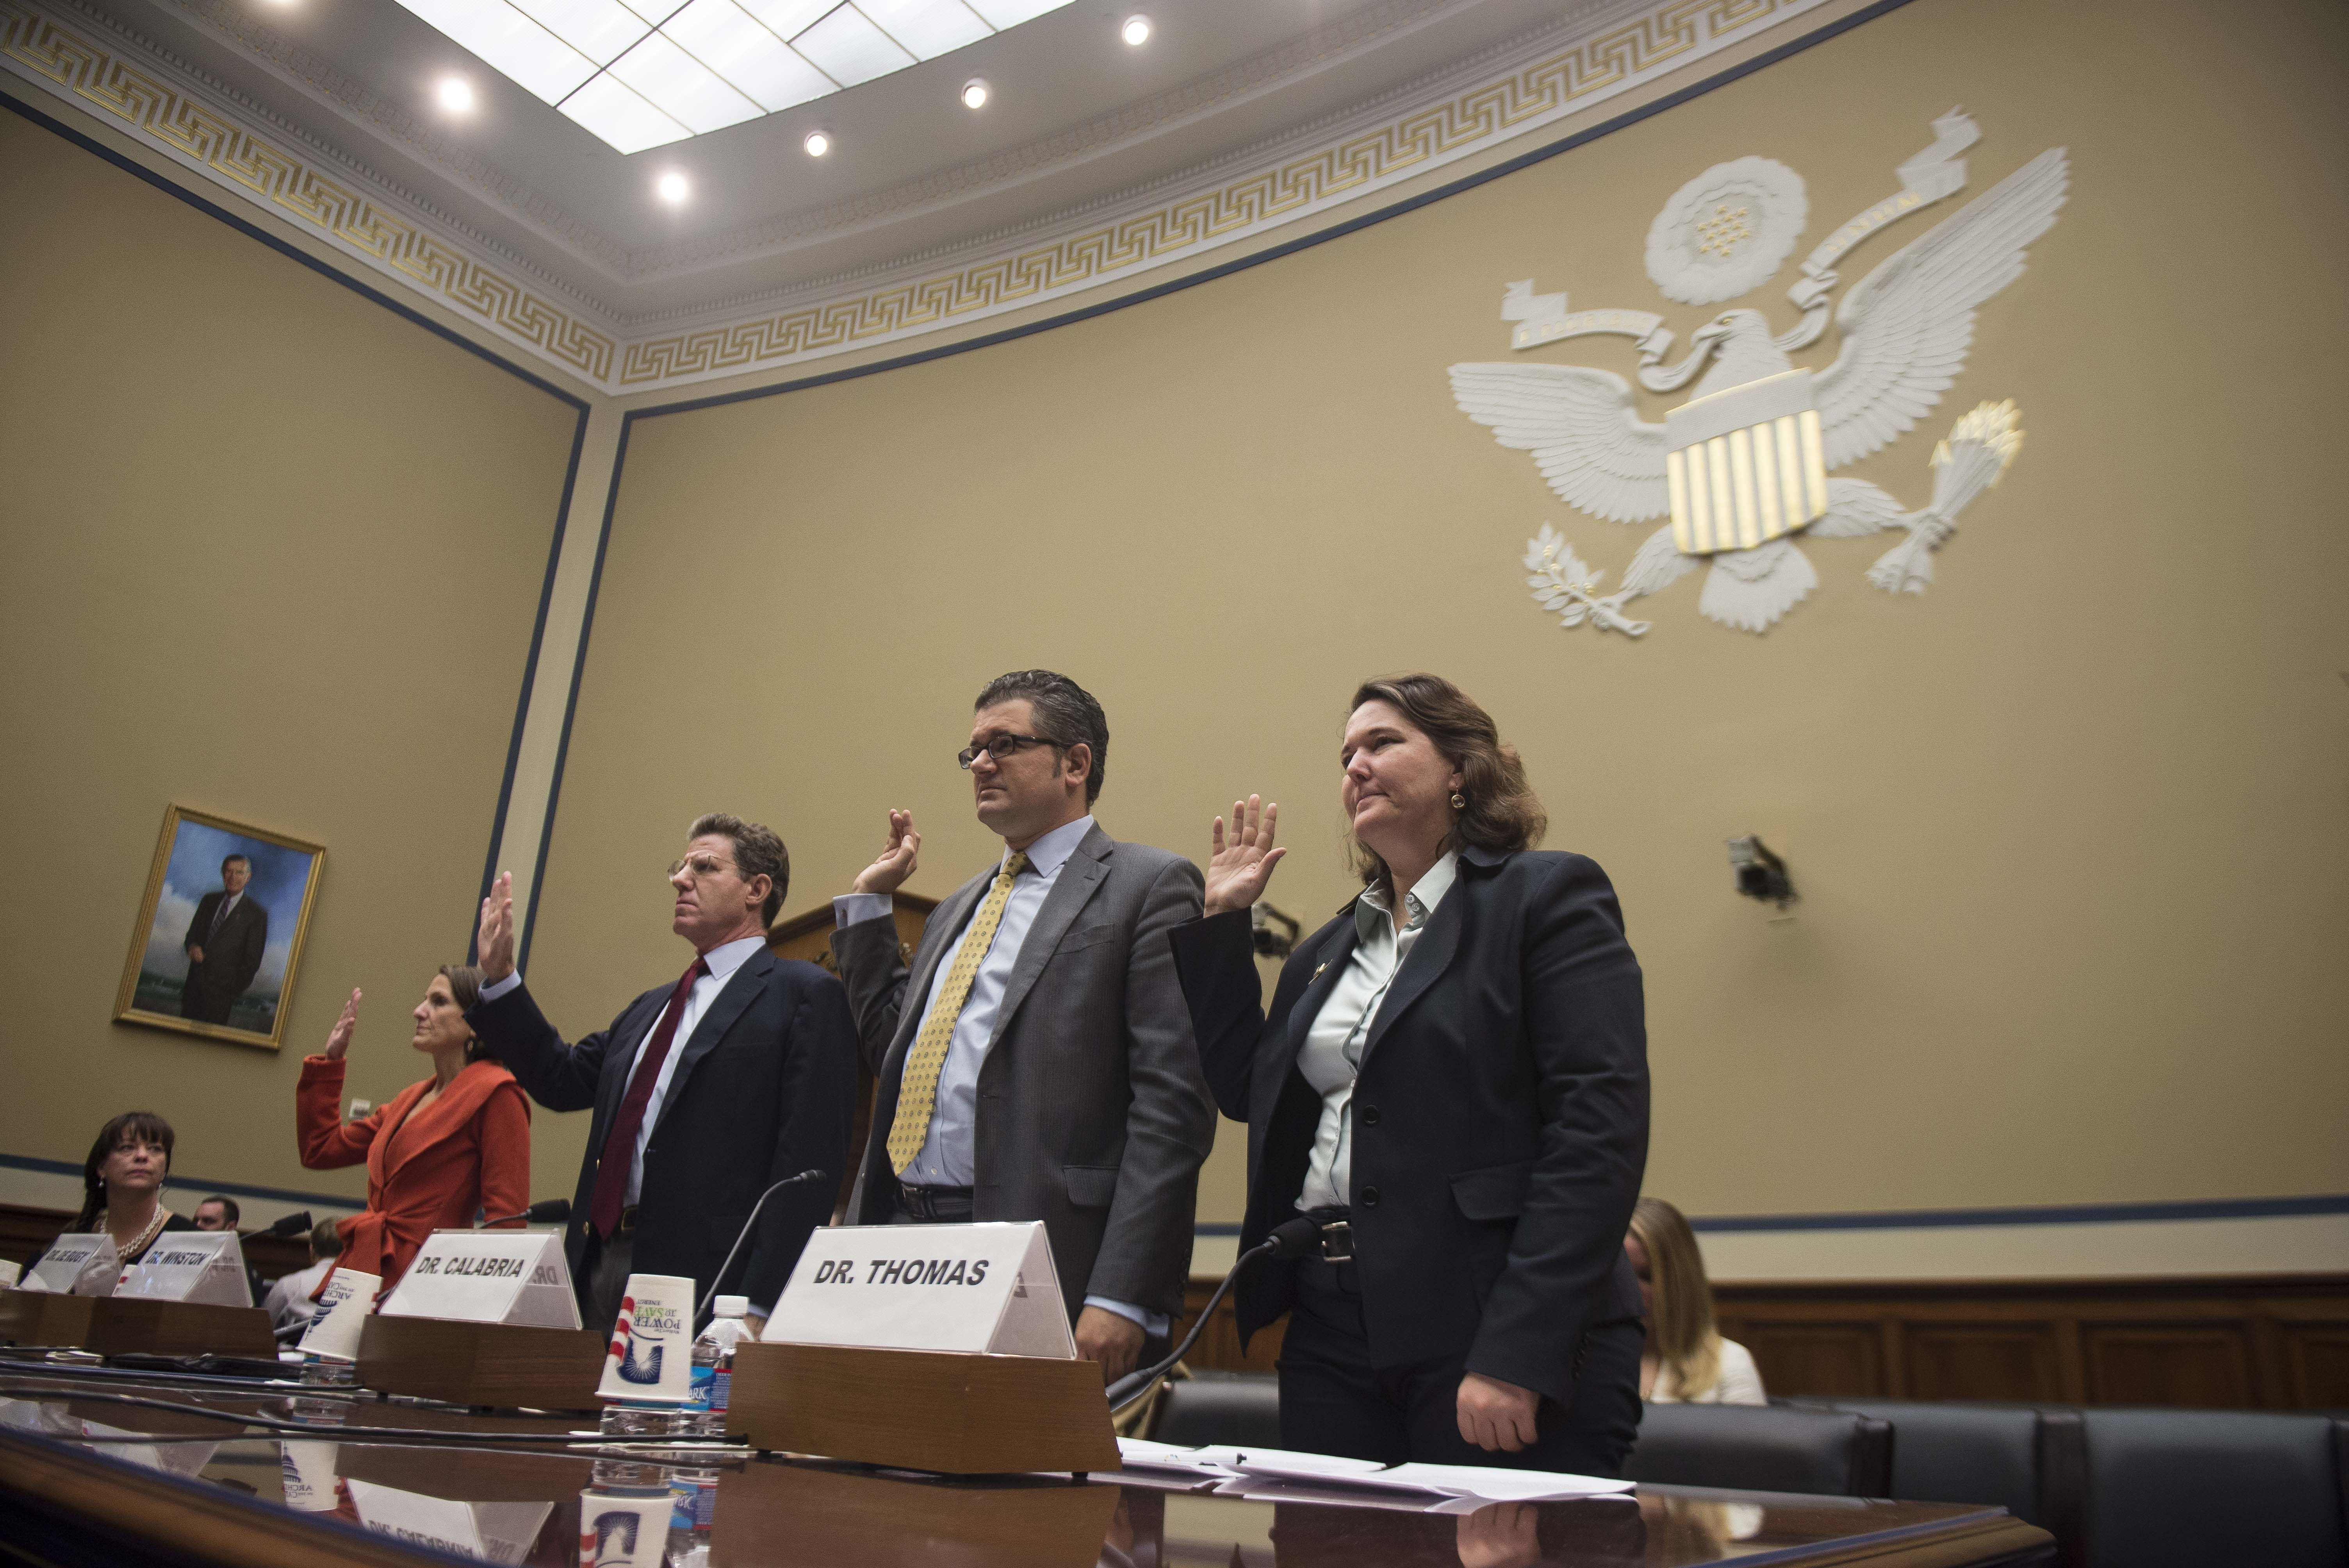 Witnesses from research centers and think tanks are sworn in at House Oversight and Government Reform Committee hearing on health law.